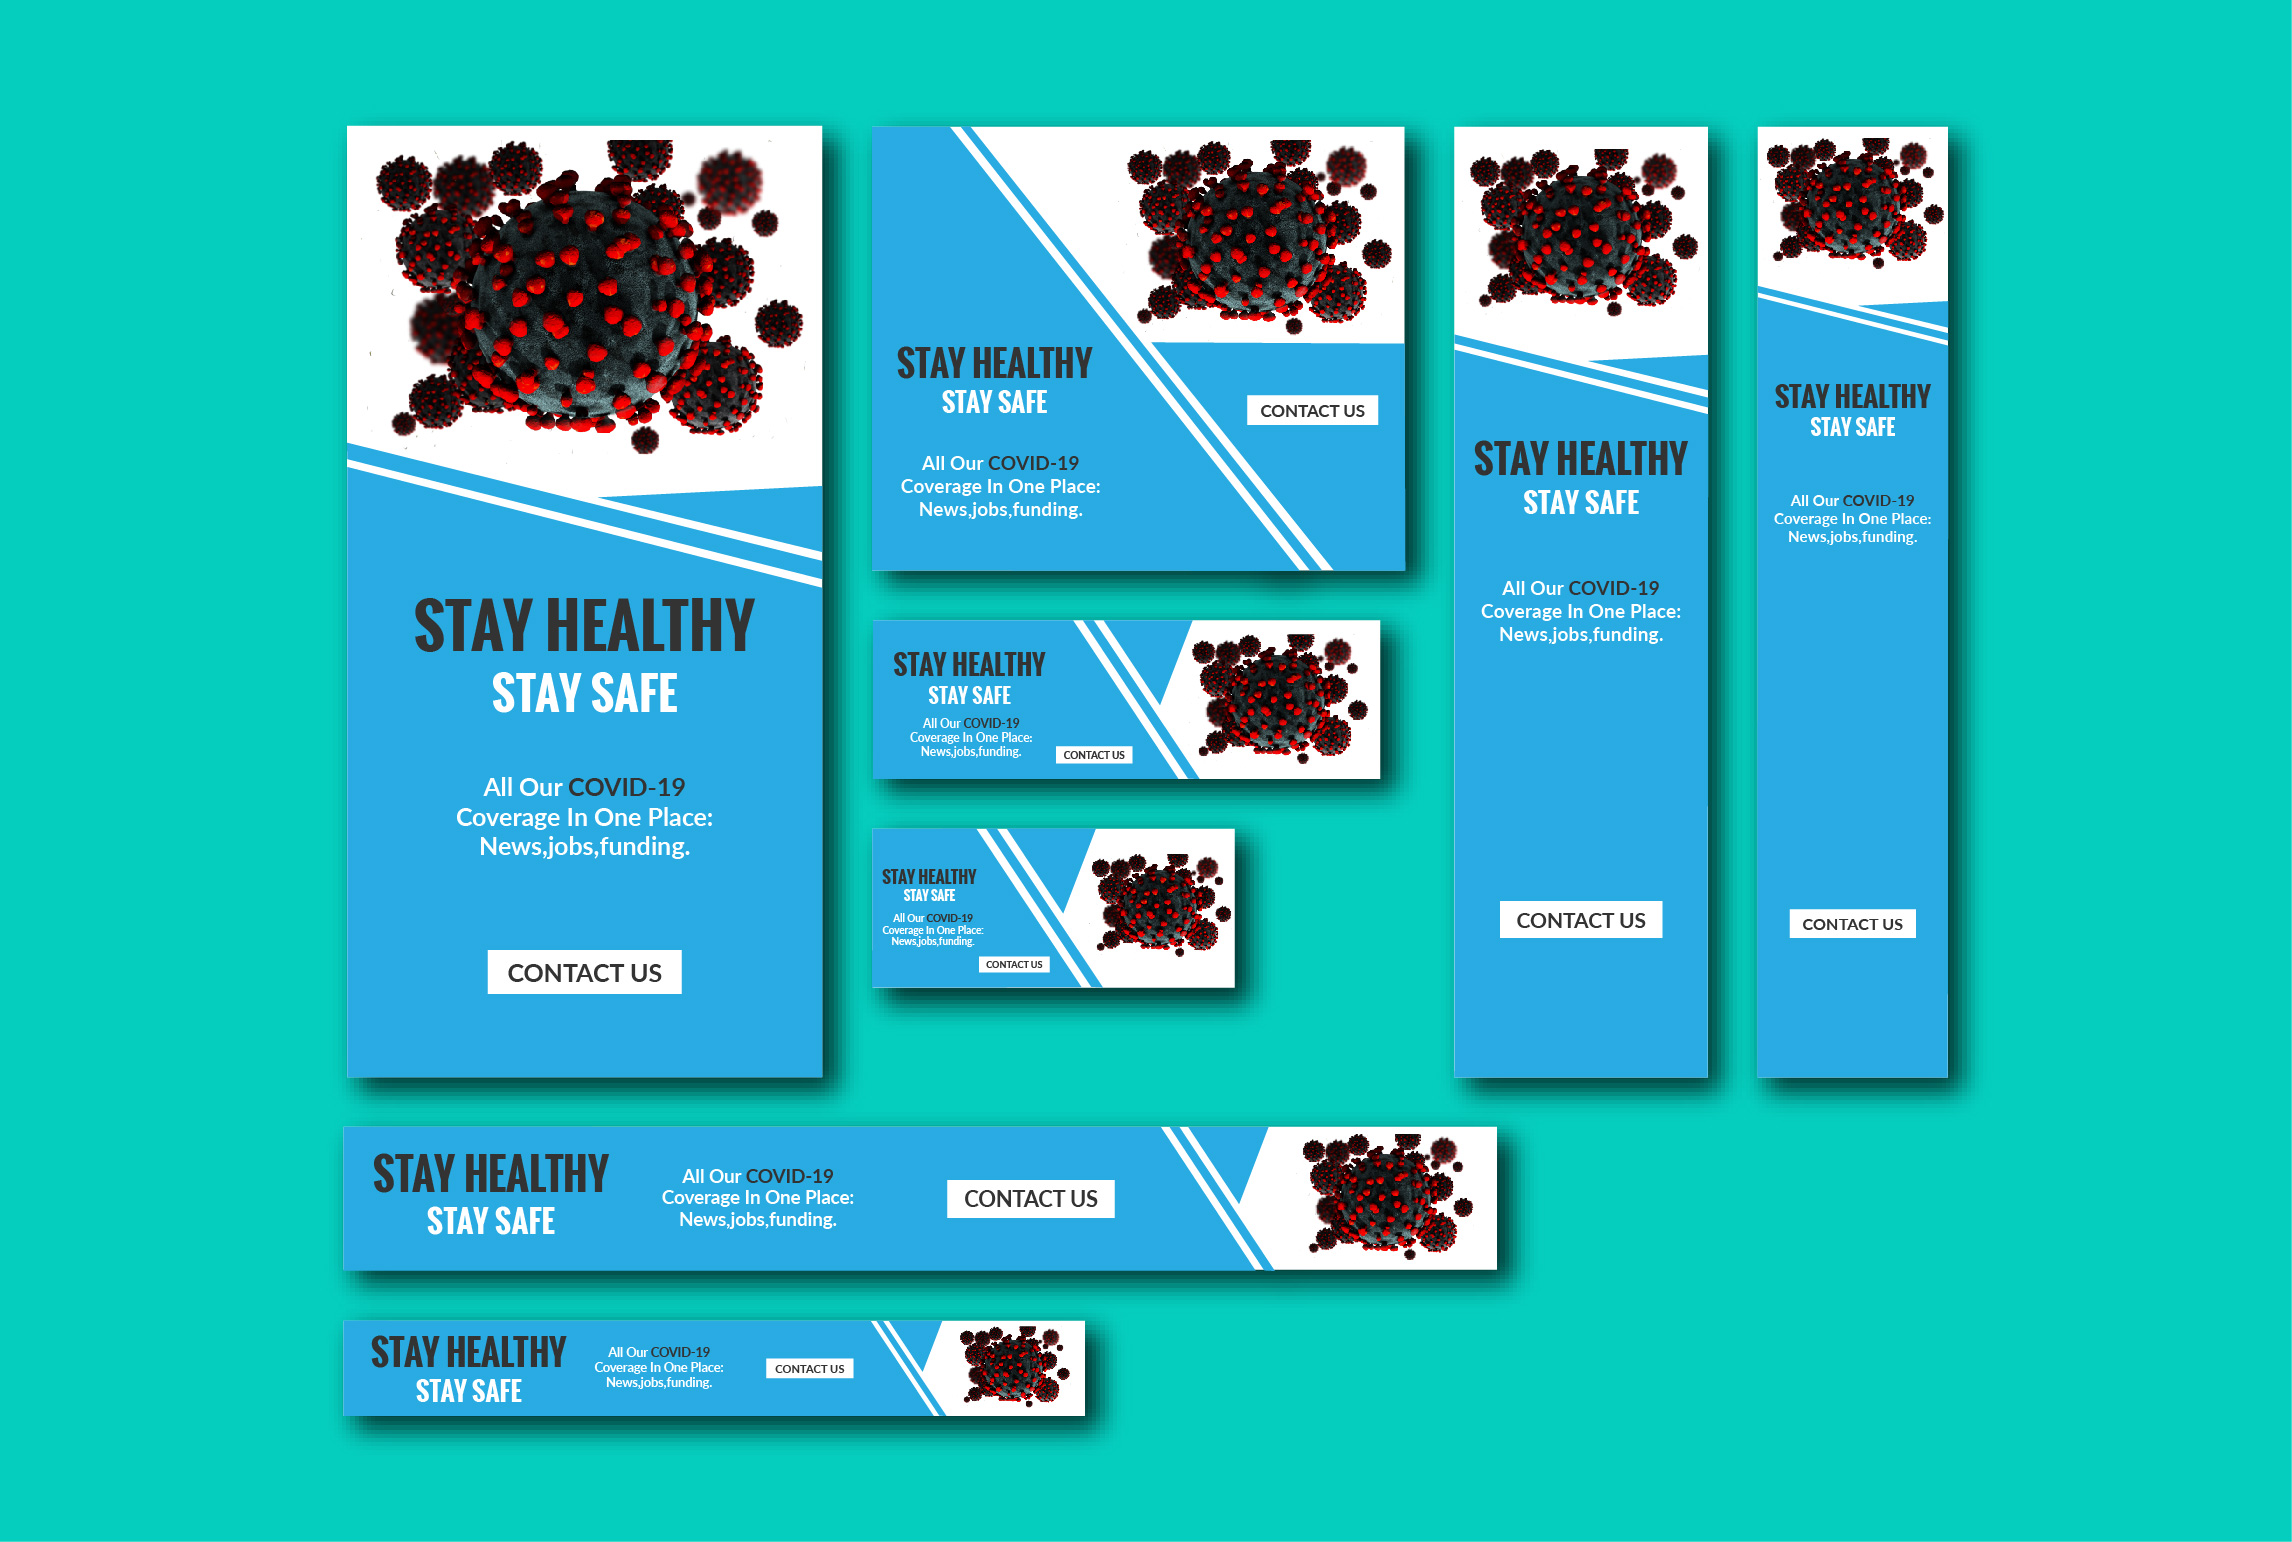 I will design HTML5 animated banner ads that get more sales